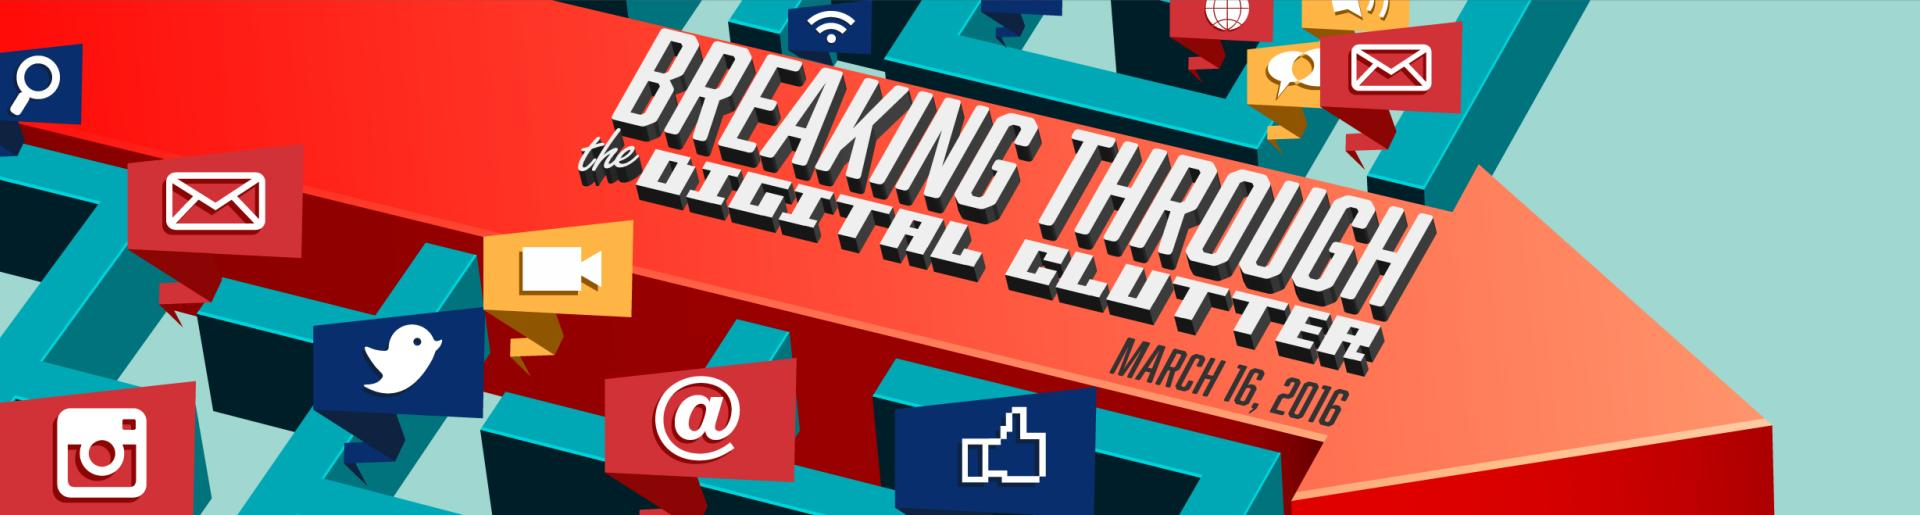 Breaking Through the Digital Clutter :: Partner Event 2016